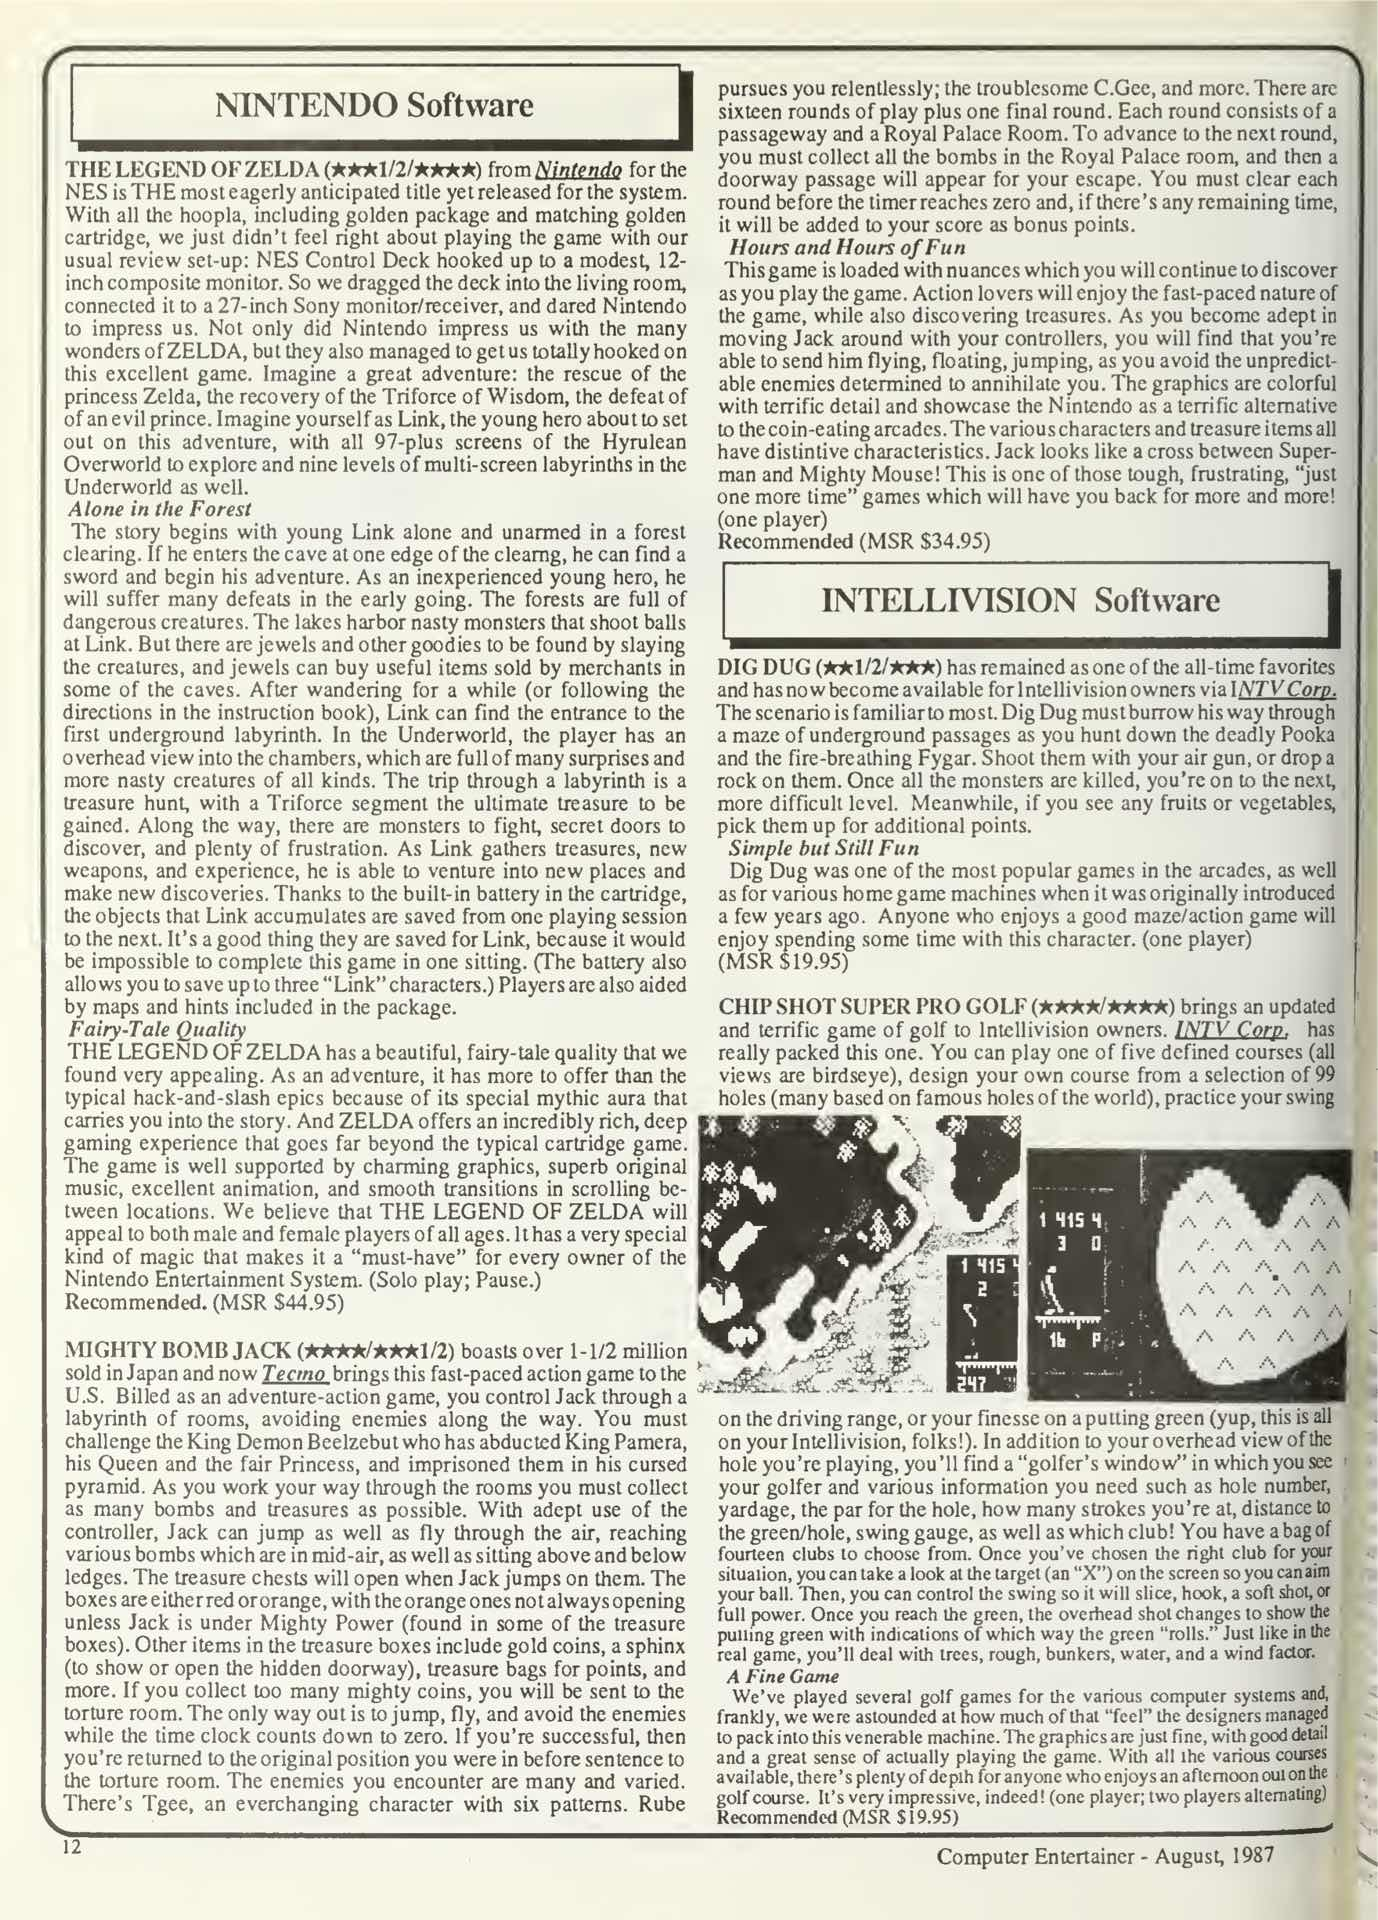 Computer Entertainer - August 1987 - pg 12